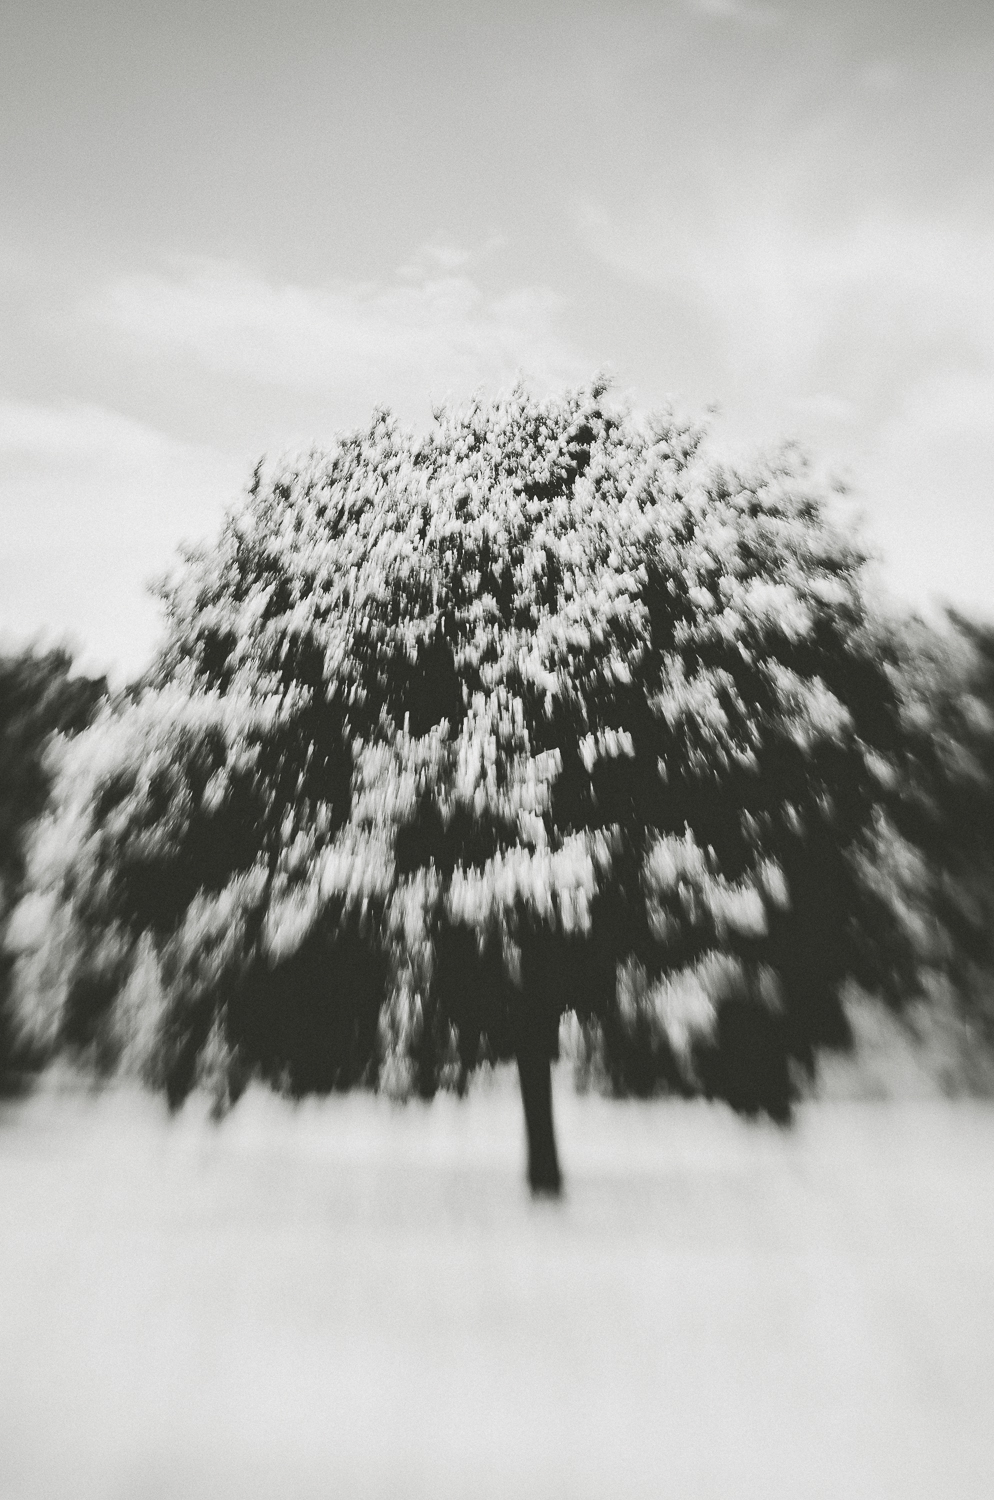 Carnac-the tree she floates-lensbaby-2013.jpg